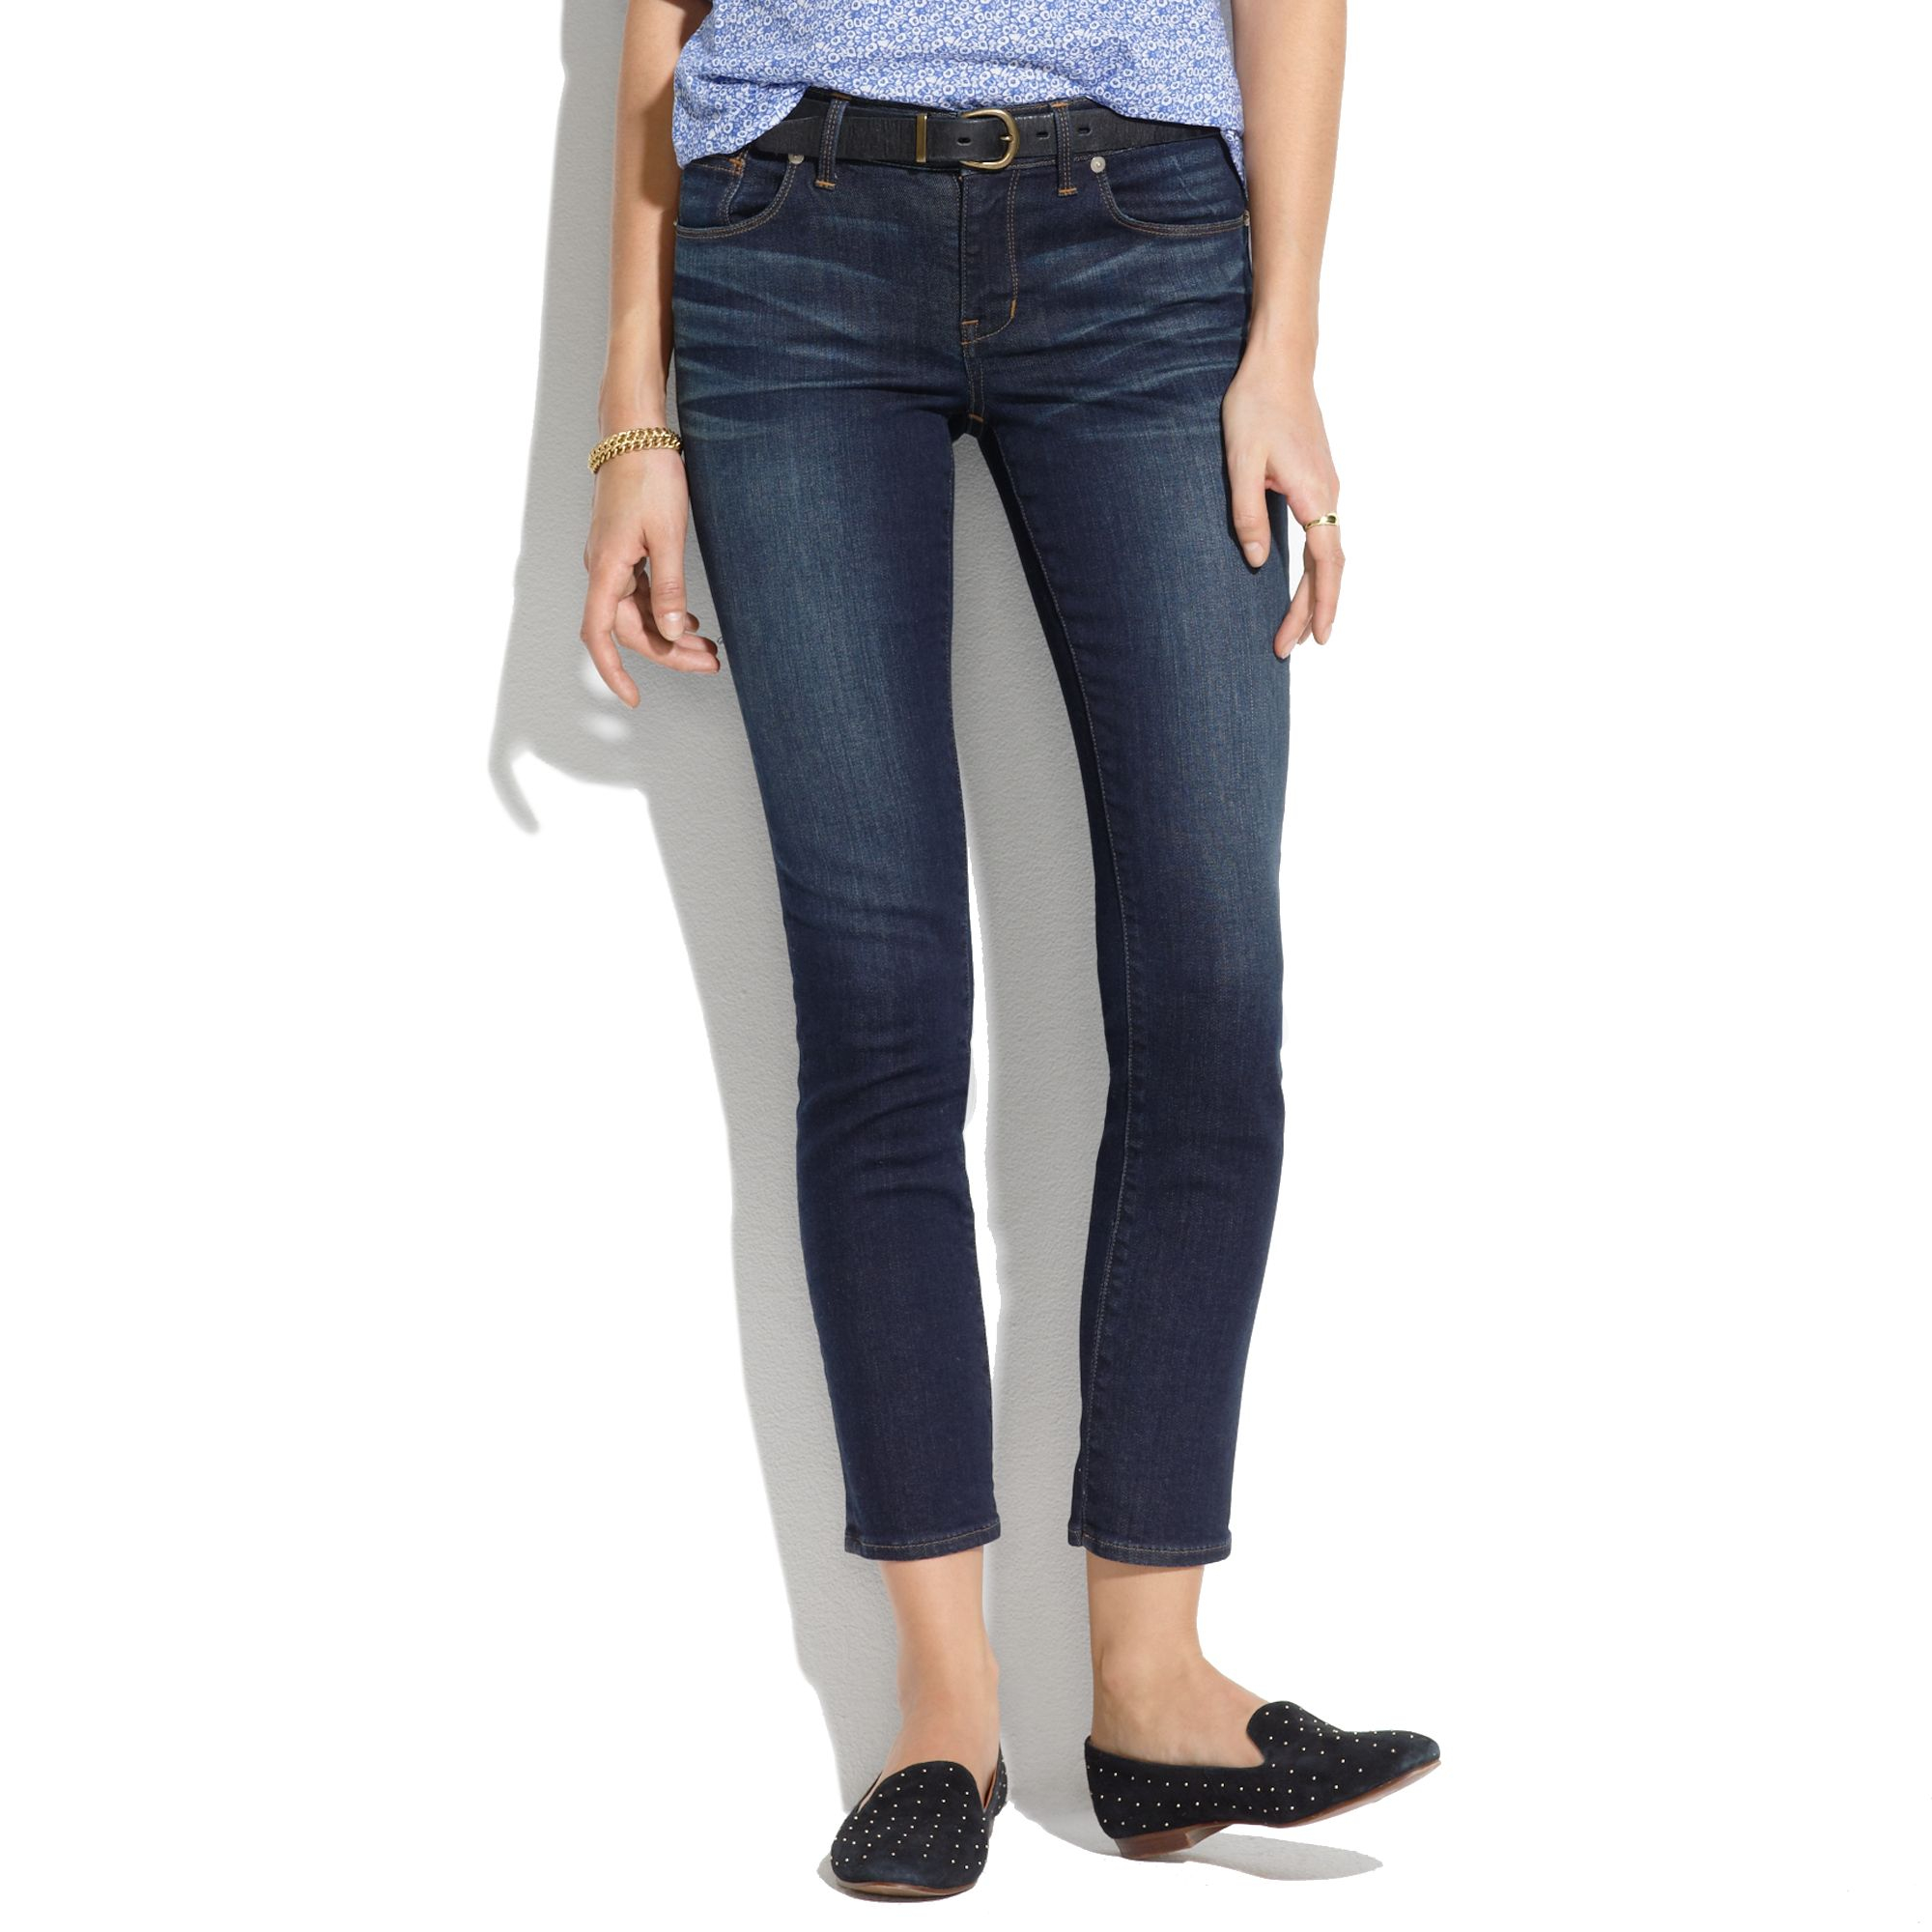 Madewell Skinny Skinny Crop Jeans In Midnight Haze in Blue | Lyst